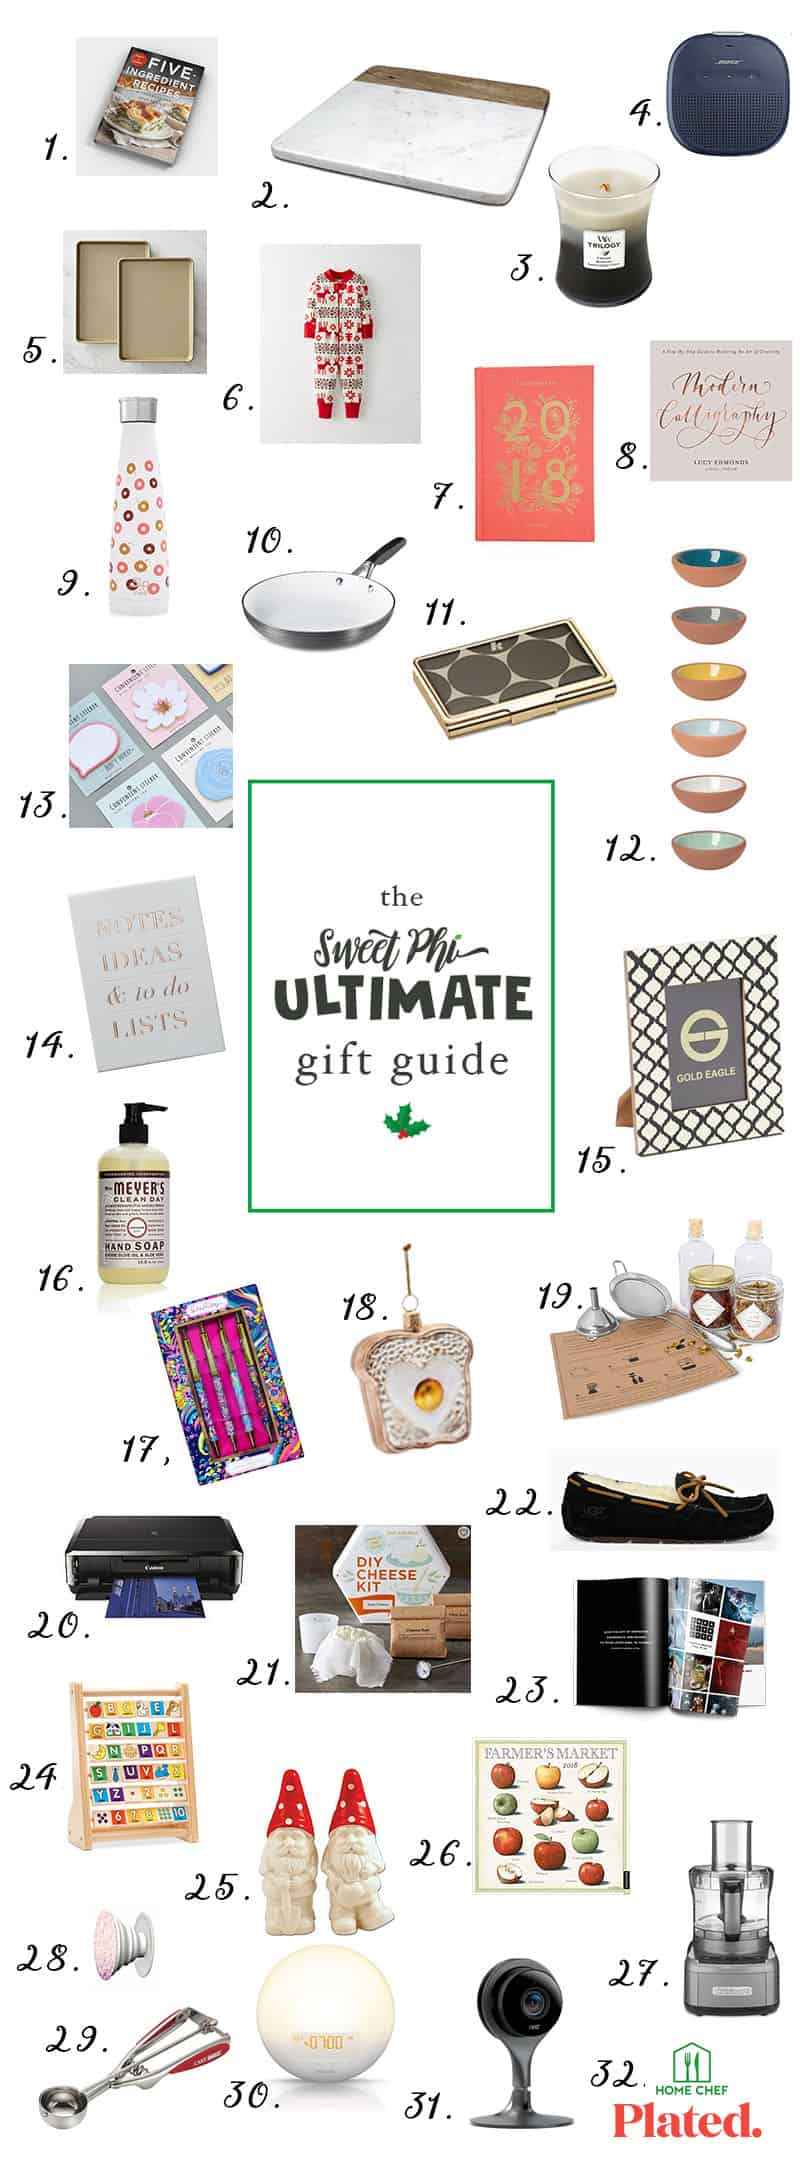 SweetPhi's Ultimate Gift Guide for everyone on your list!